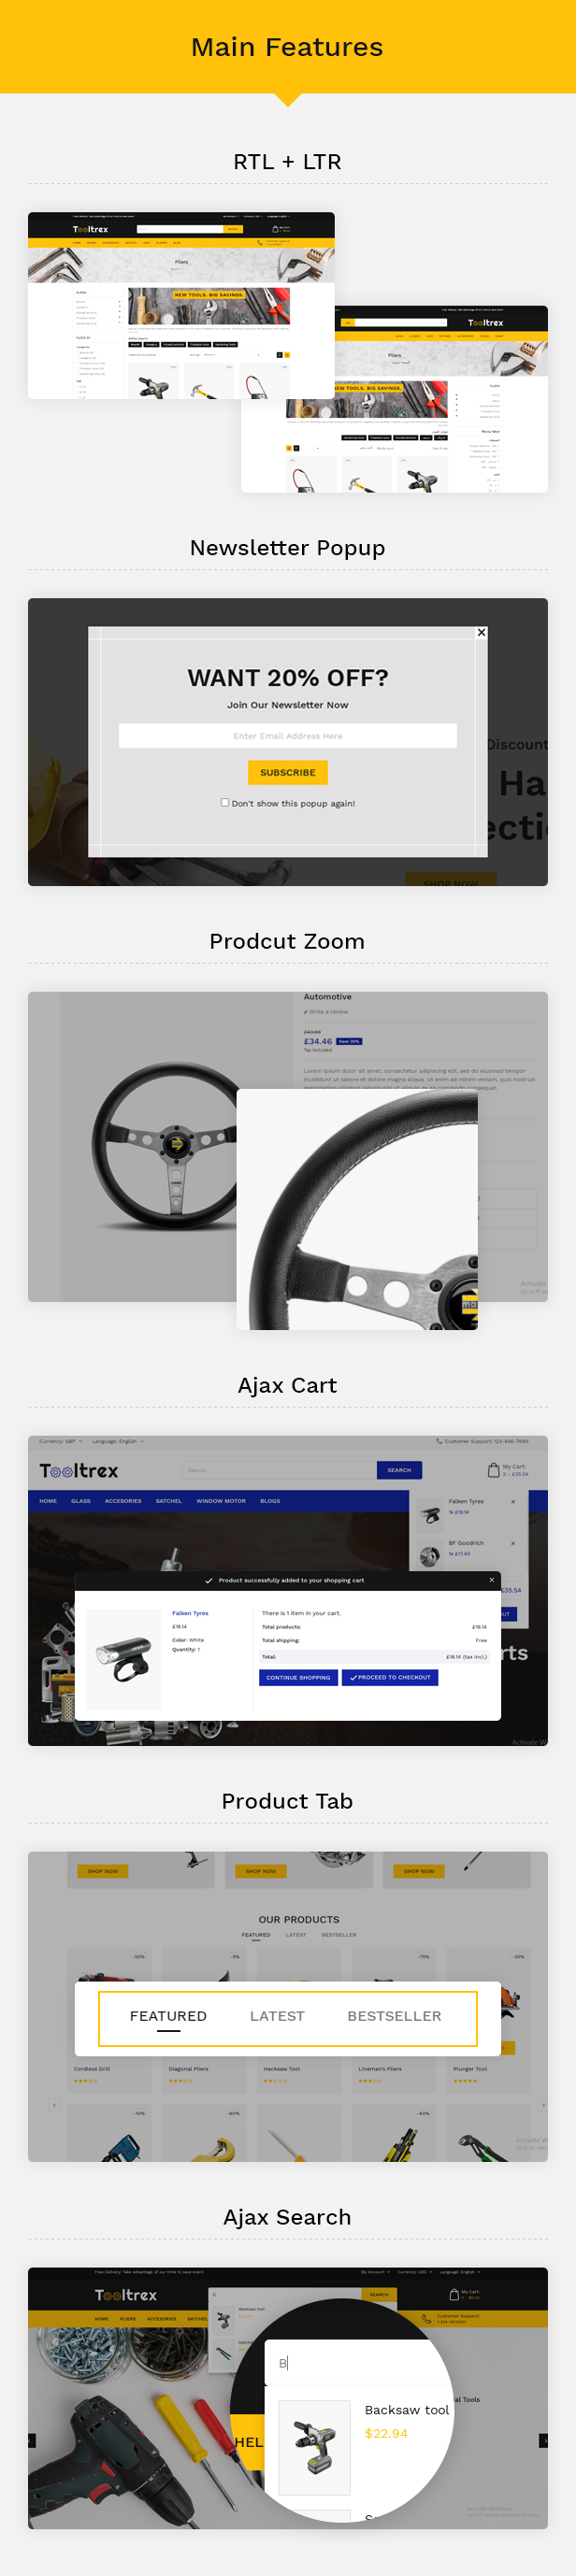 Tooltrex Features